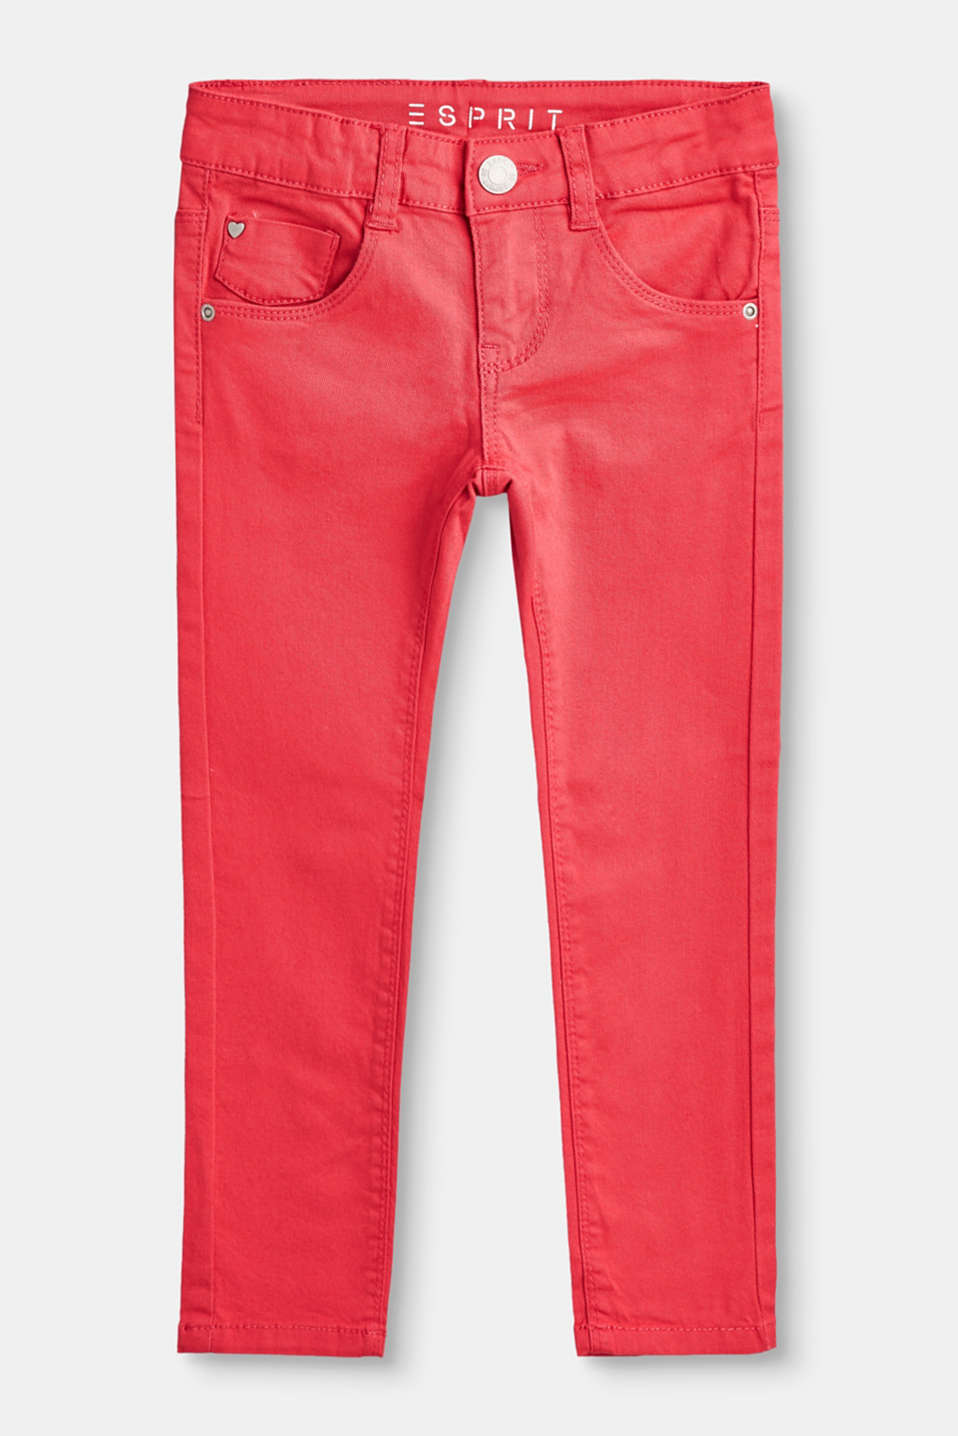 Esprit - Coloured stretch jeans with adjustable waist